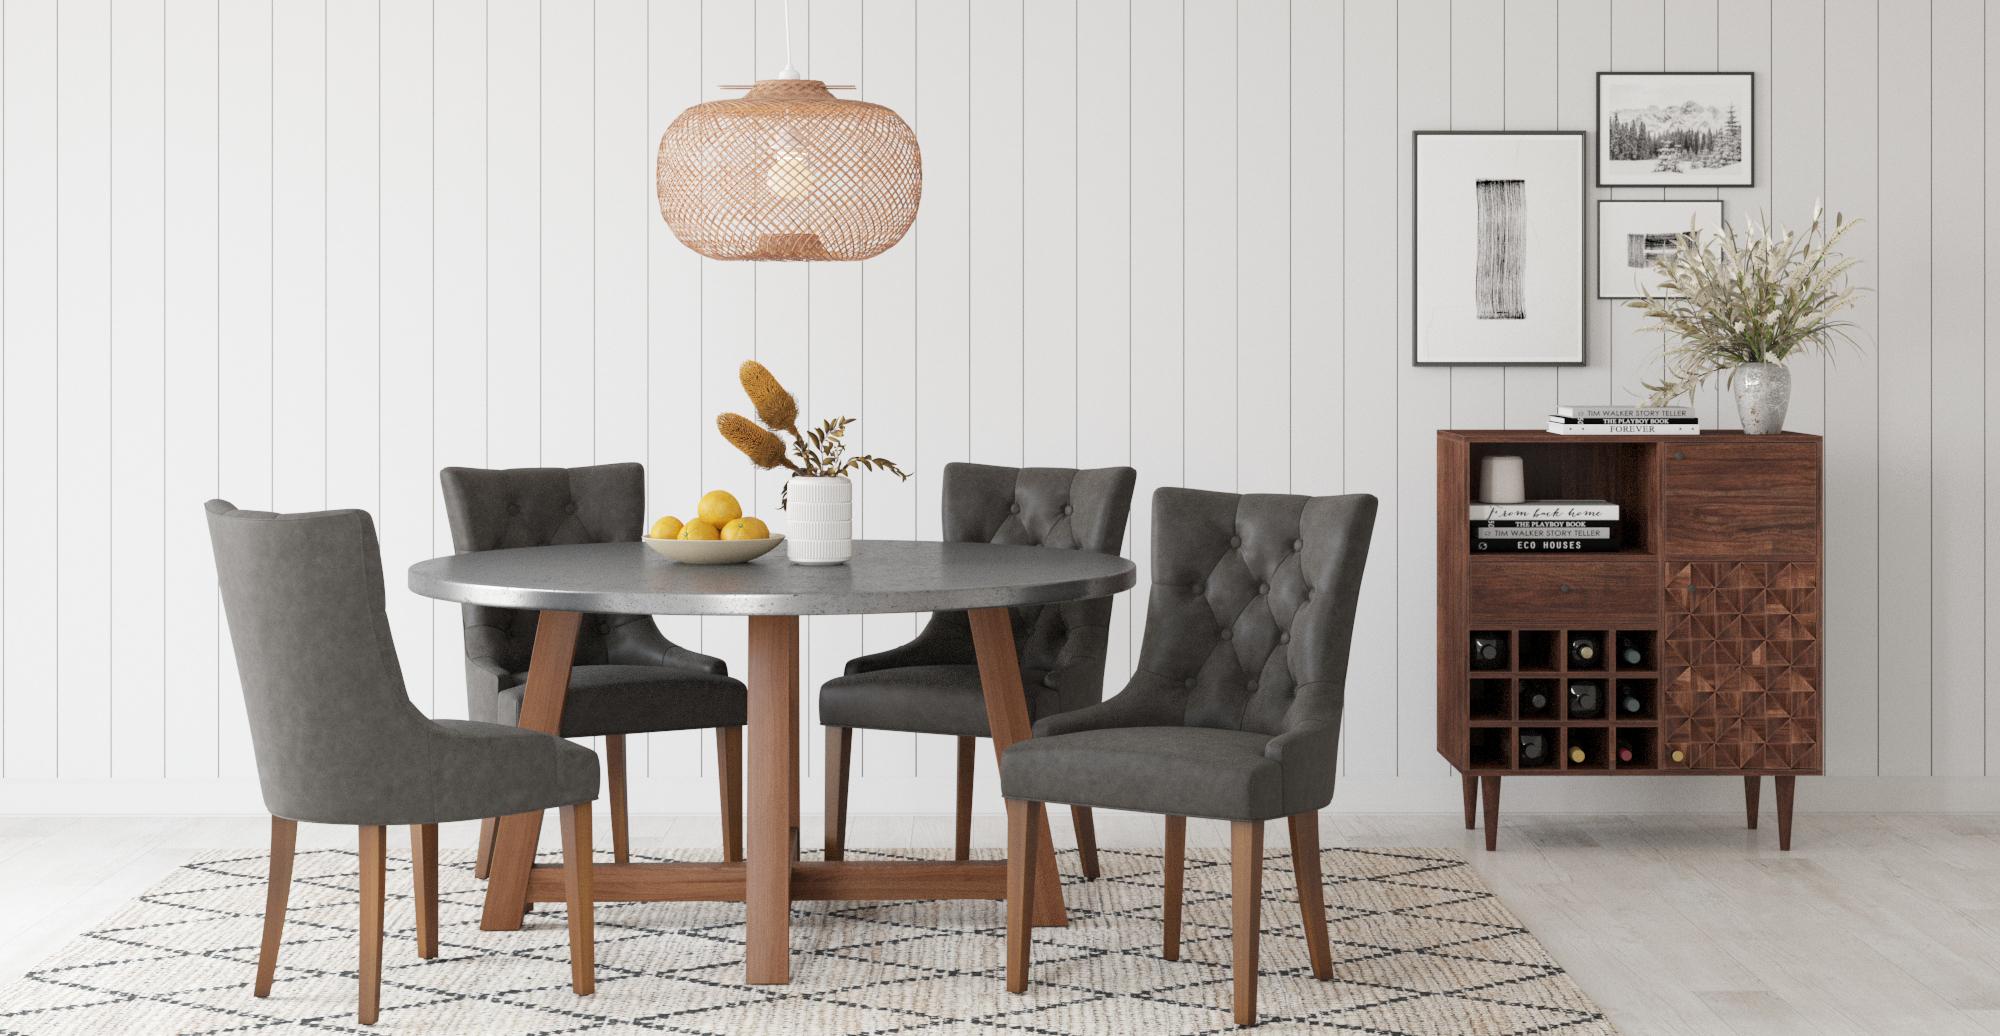 Brosa Carson Bar Cabinet styled in contemporary dining room